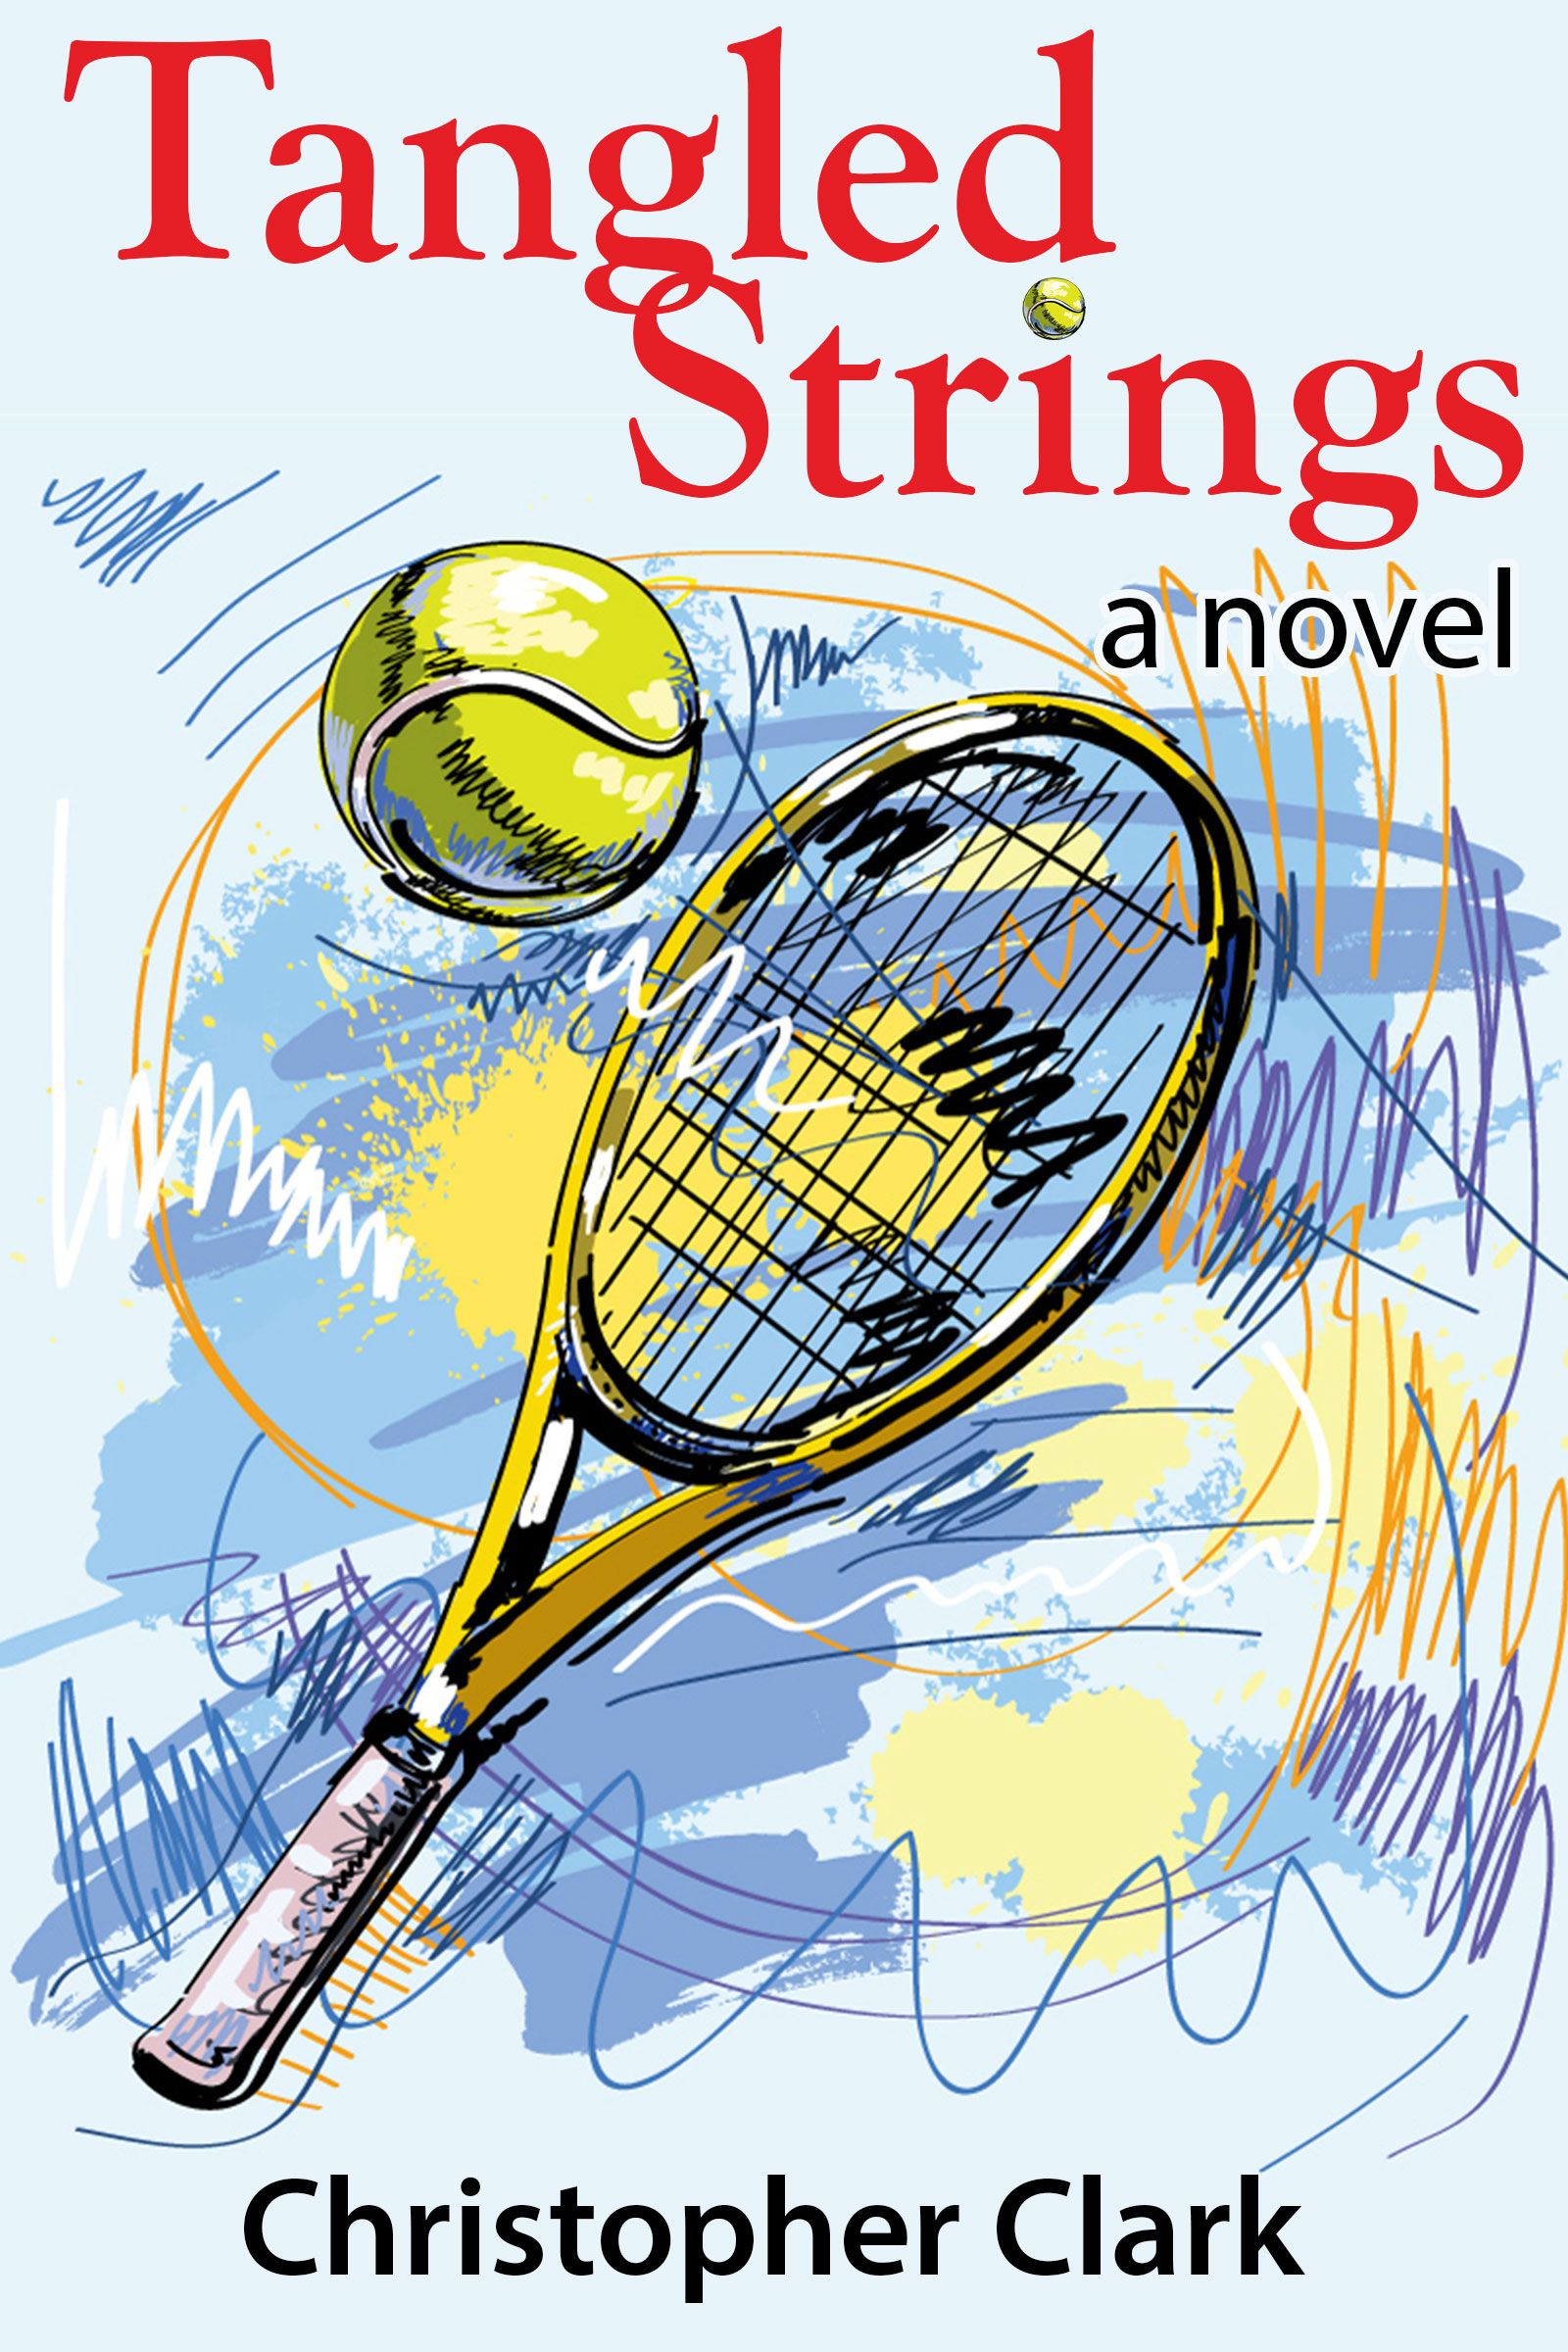 Looking for a great read?  - Click here to buy Tangled Strings, my thriller              Normal   0                  false   false   false      EN-US   X-NONE   X-NONE                                                                                                                                                                                                                                                                                                                                                                                                                                                                                                                                                                                                                                                                                                                                                                                                                                                                                                                                                                                                                                                                                                                                                                                                                                                                          /* Style Definitions */  table.MsoNormalTable 	{mso-style-name: